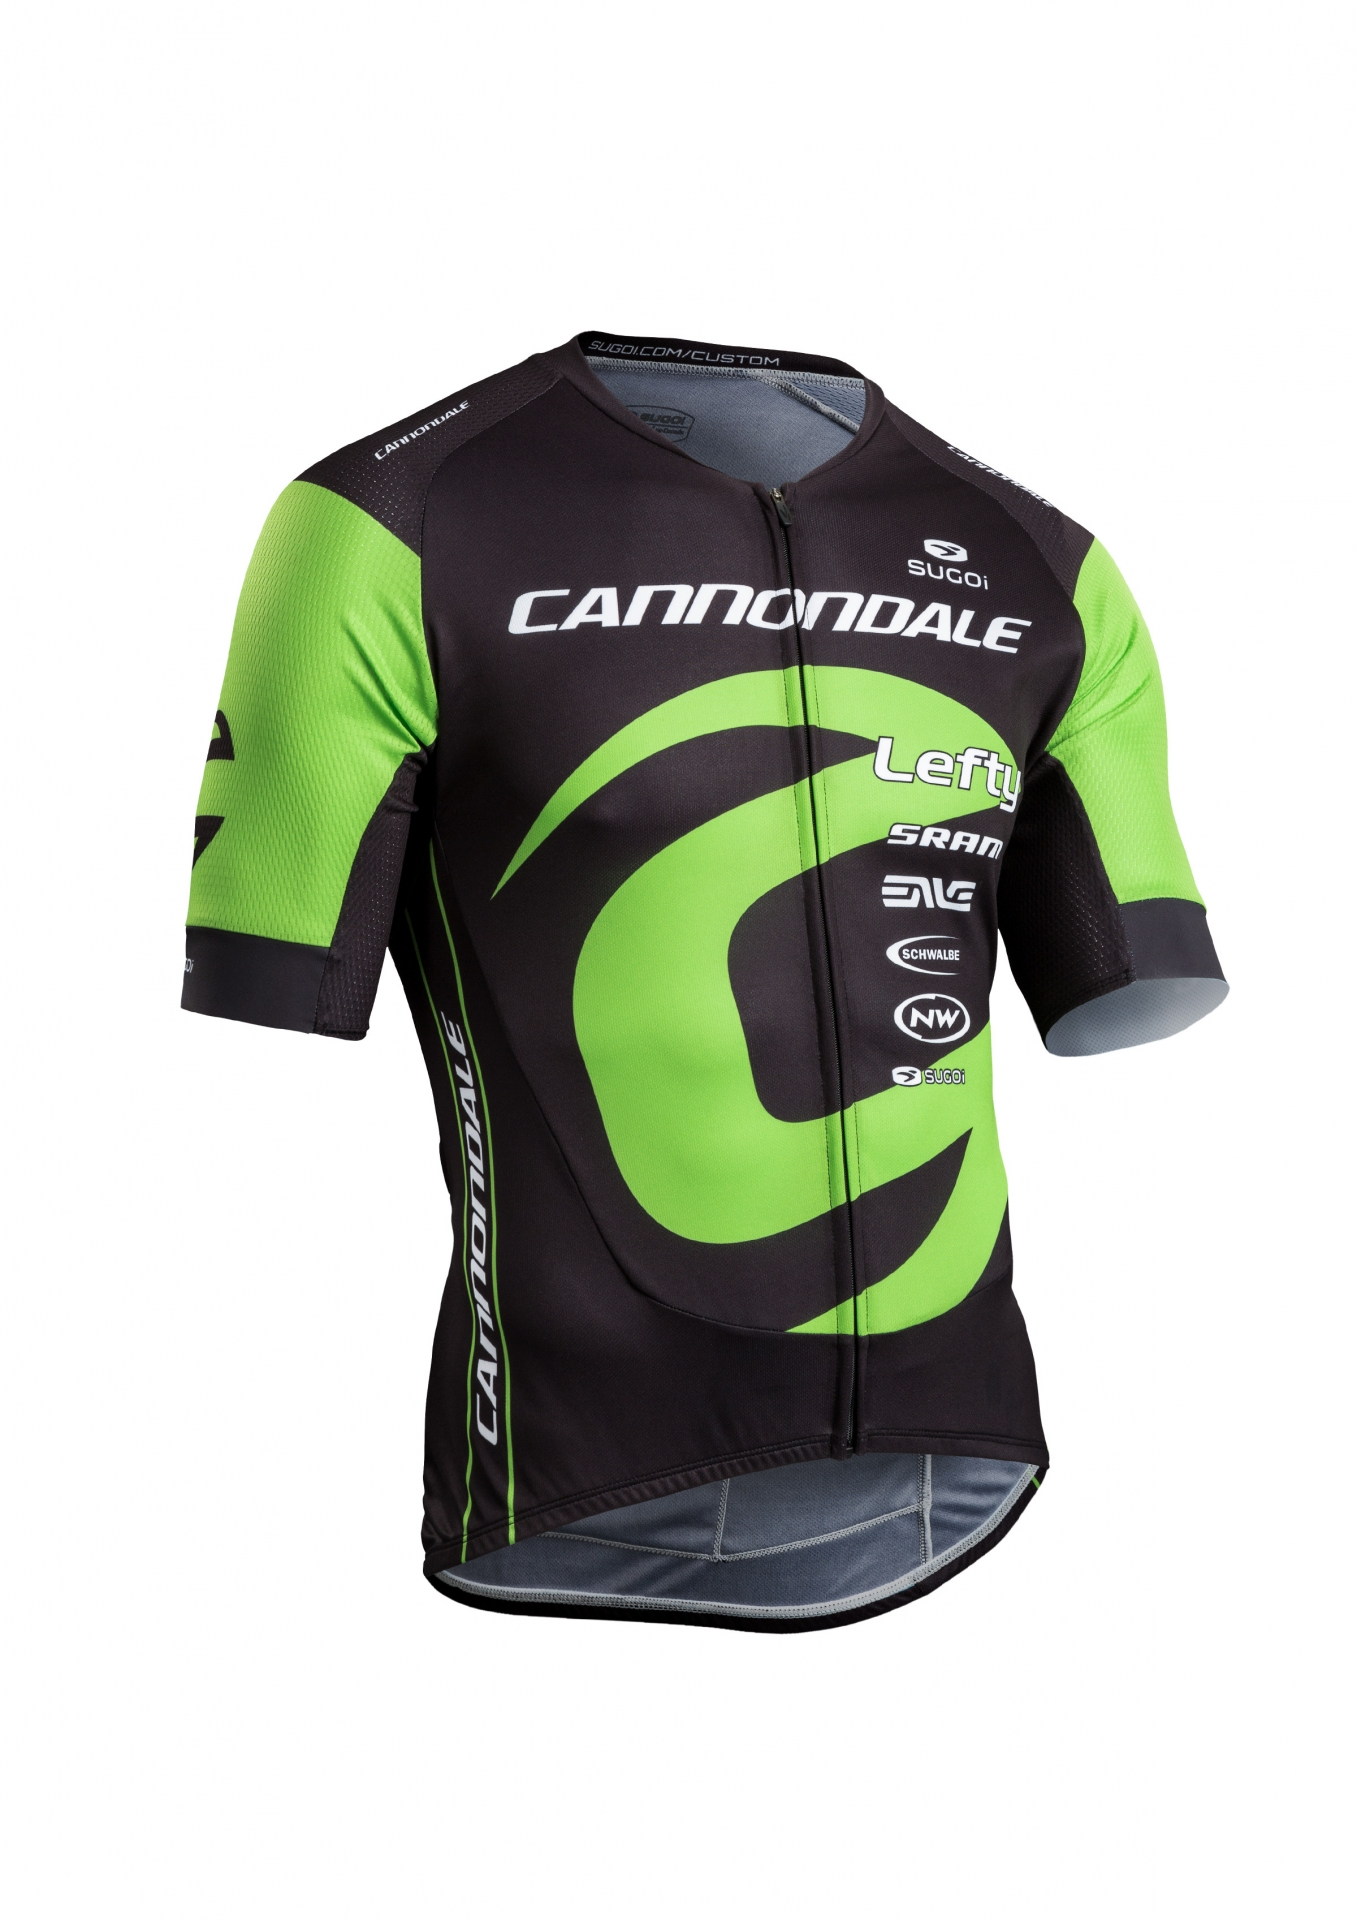 Maillot Cannondale Training Jersey Factory Racing CFR - S